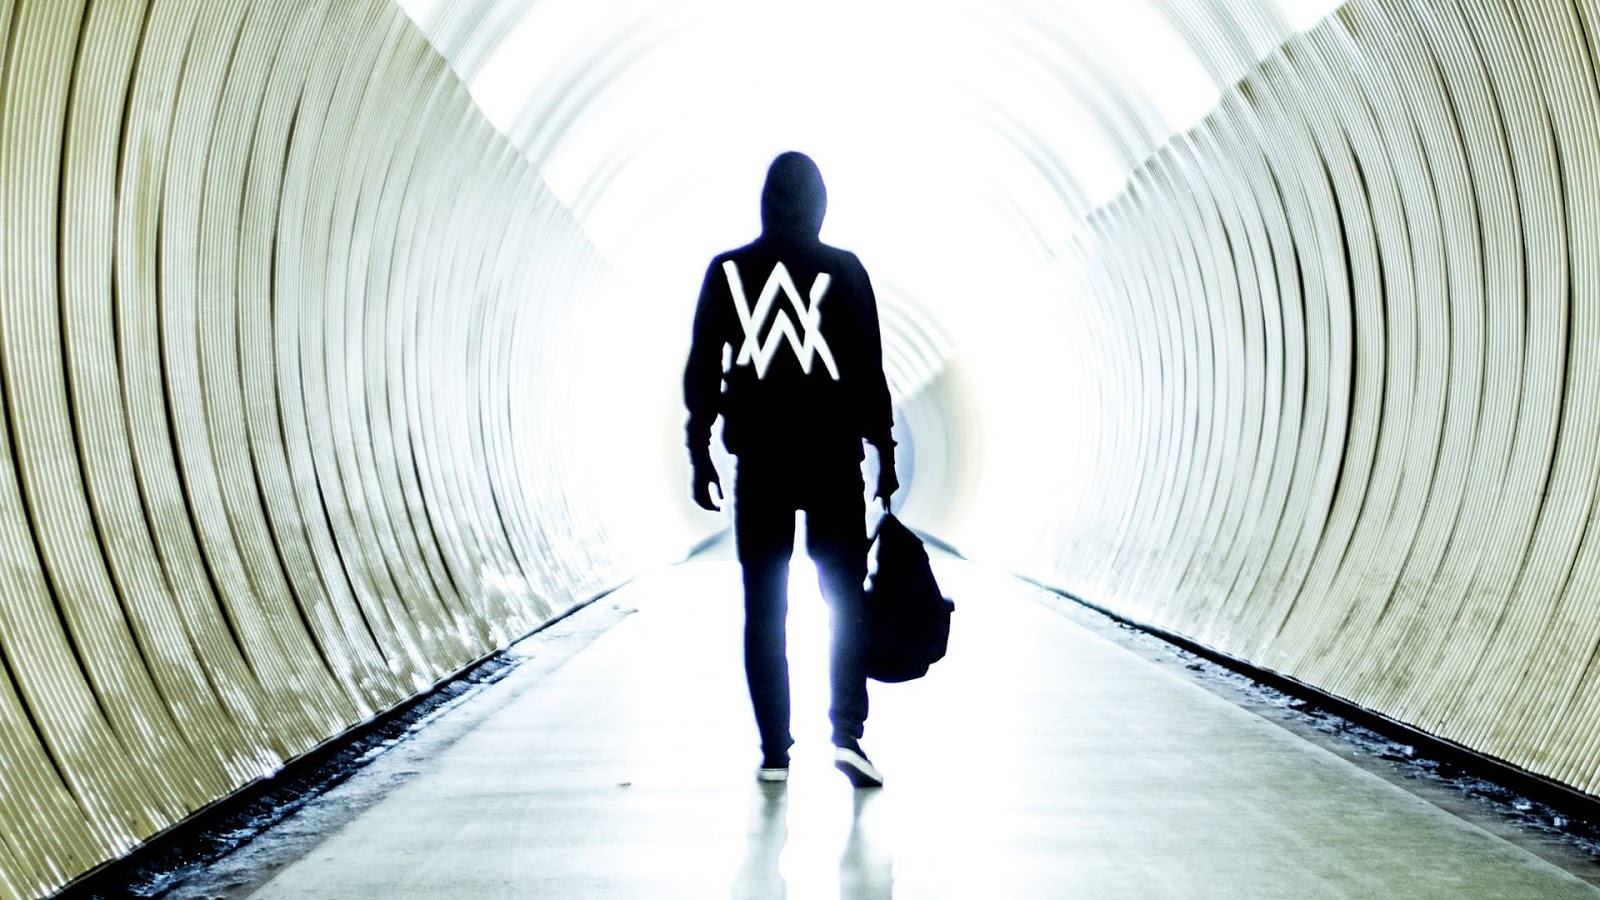 Alan Walker - The young and talented DJ of the millennium